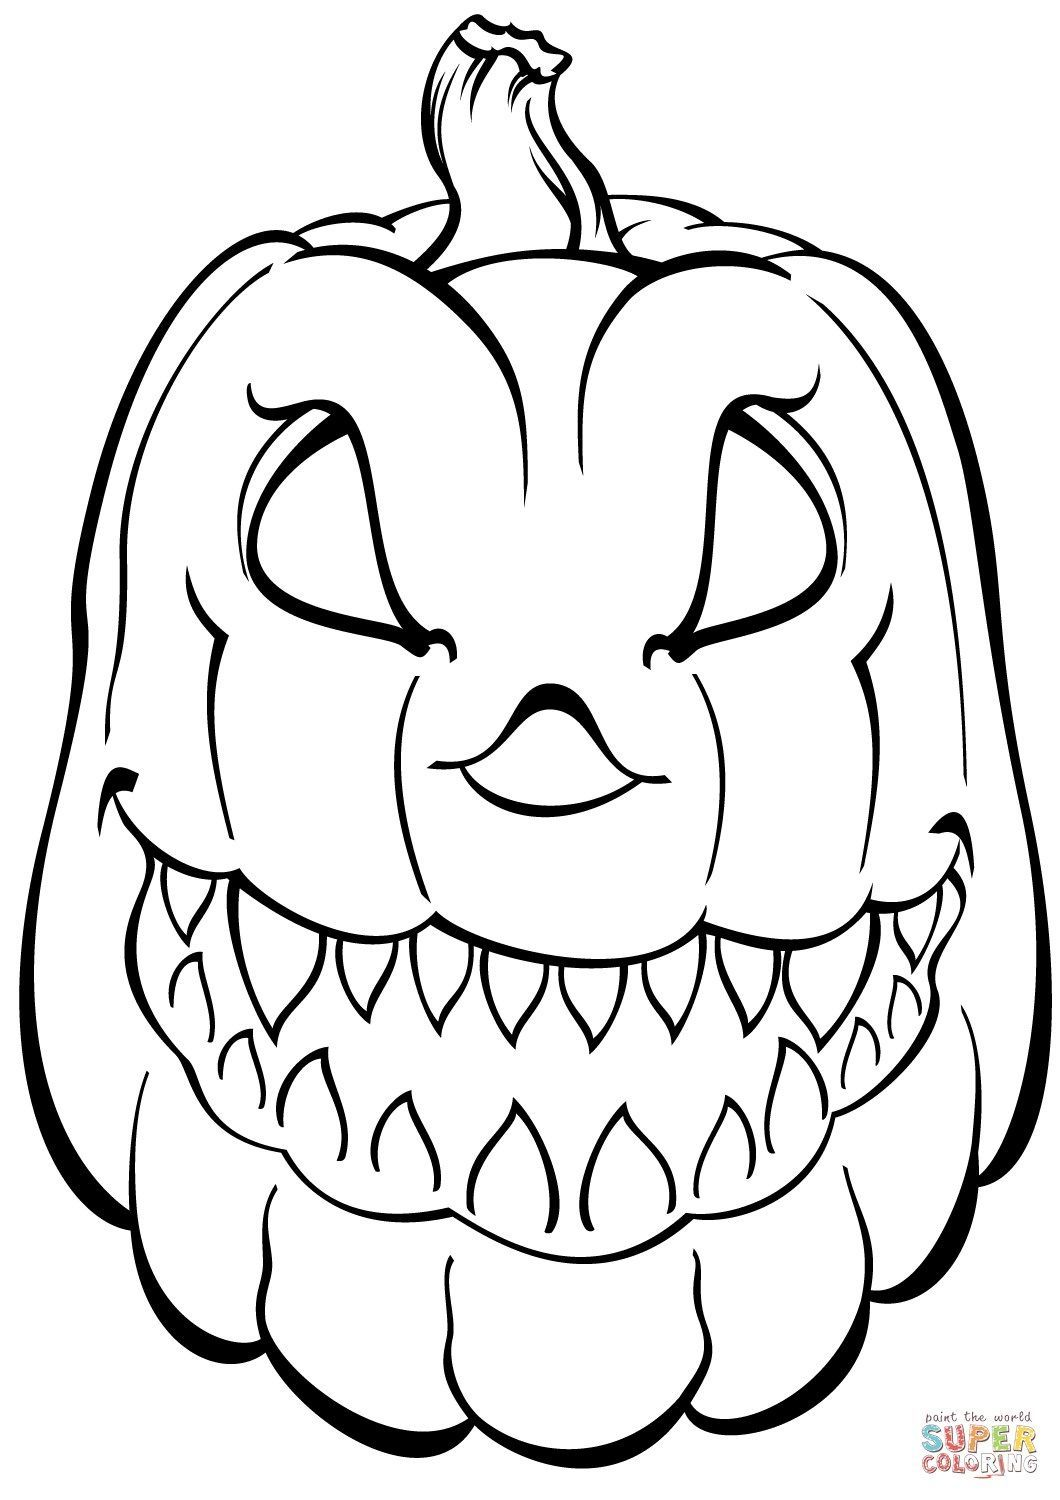 22 Creative Photo Of Pumpkin Coloring Pages Halloweencoloringpages Pumpkin Coloring Pages Halloween Coloring Pages Printable Halloween Pumpkin Coloring Pages